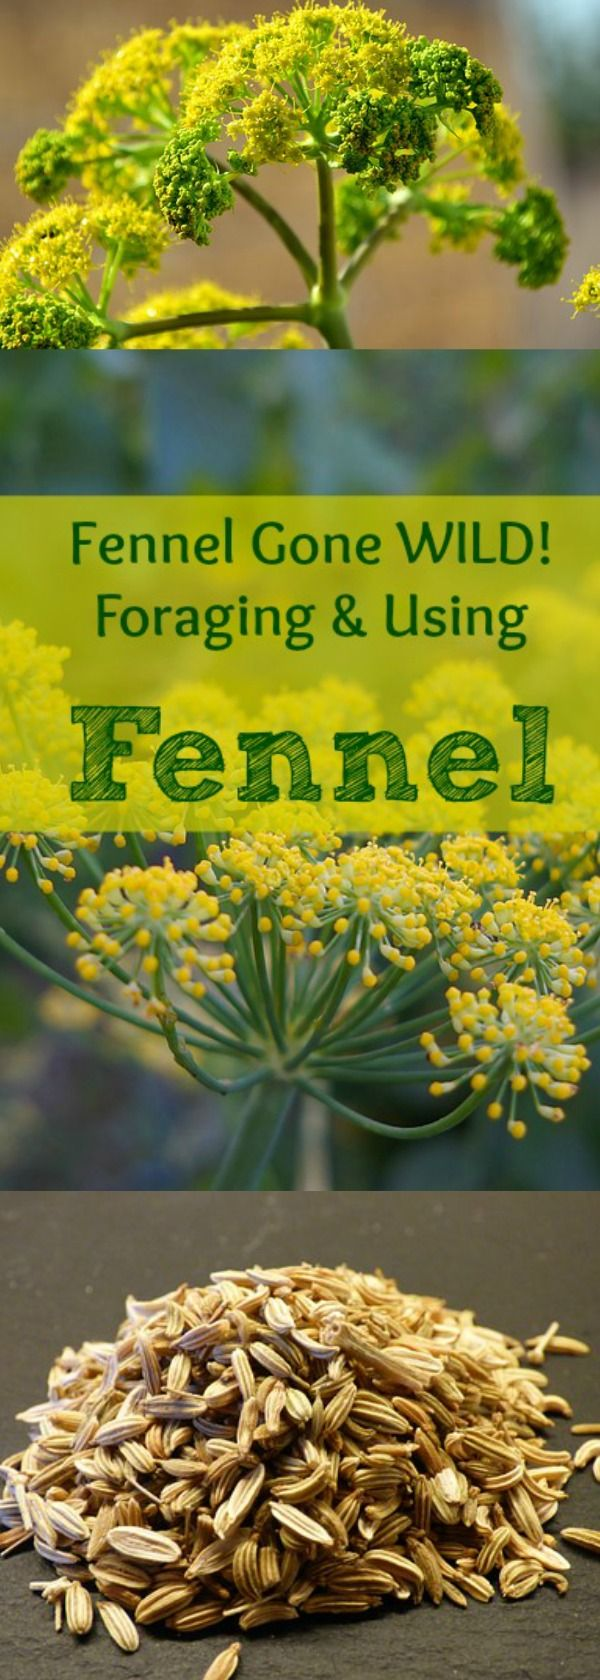 Have you ever wanted to go out there and forage for your own Fennel? This herbs smells absolutely DELICIOUS...and there are tons of uses for it too! Find out all!